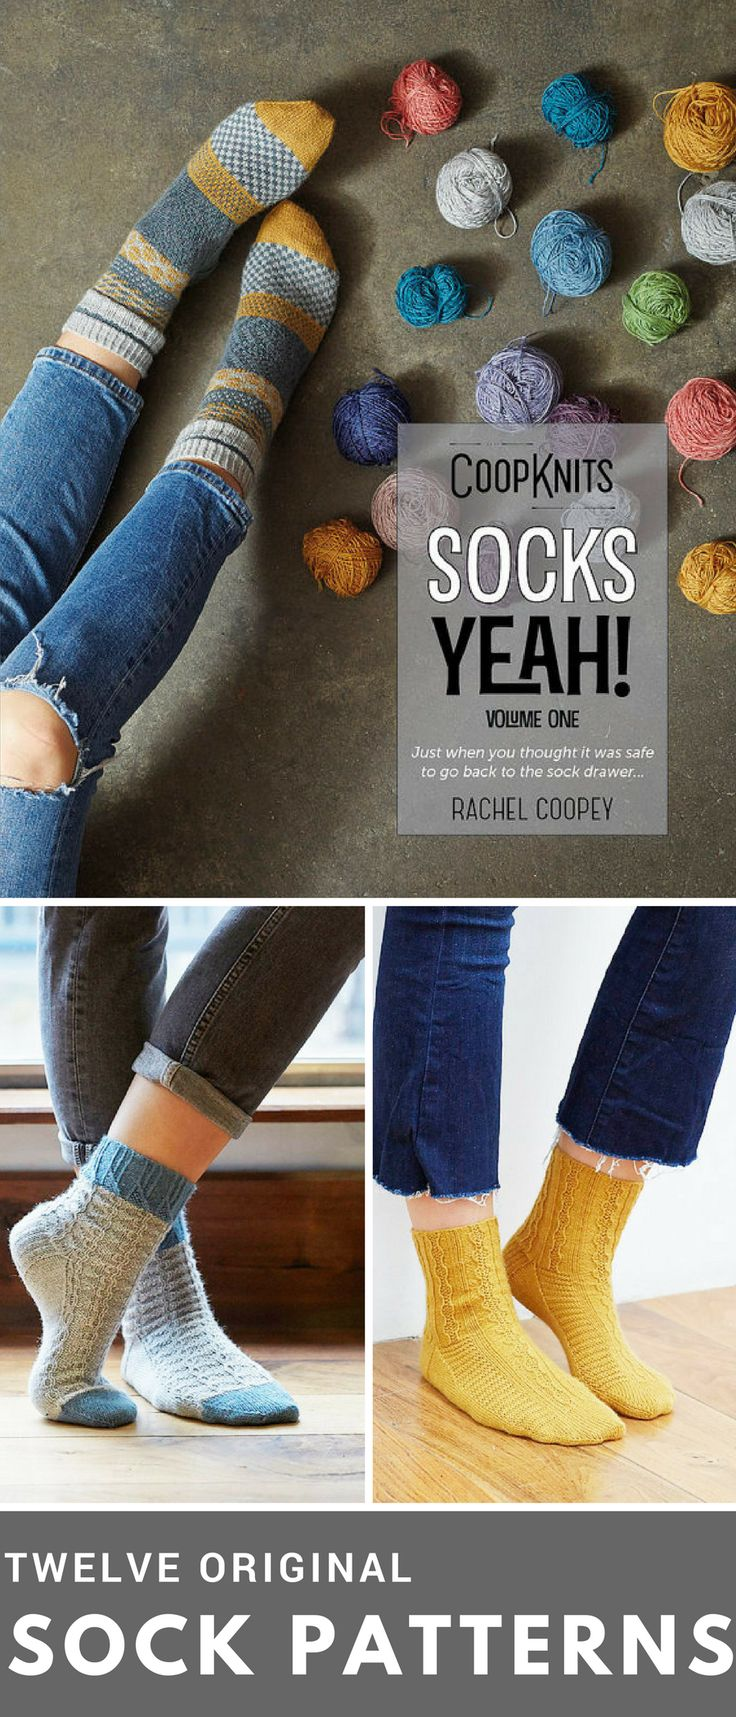 Enough sock patterns to knit a pair every month this year! Can buy the book on its own, or with two skeins of the Socks Yeah! yarn. #affiliate #socks #knitting